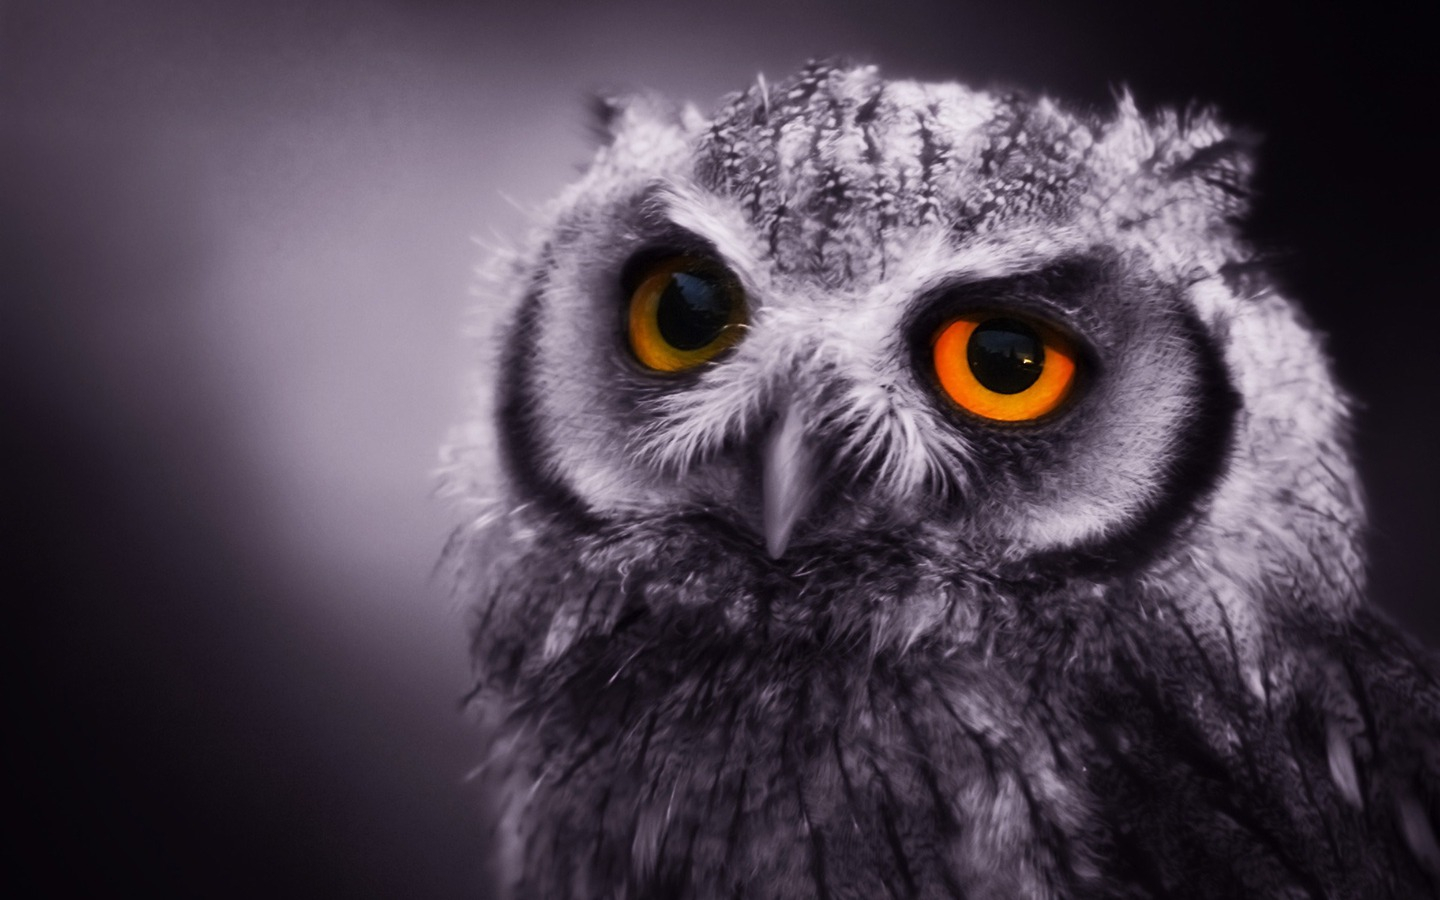 Sad Owl Wallpaper photo and wallpaper All Sad Owl Wallpaper pictures 1440x900